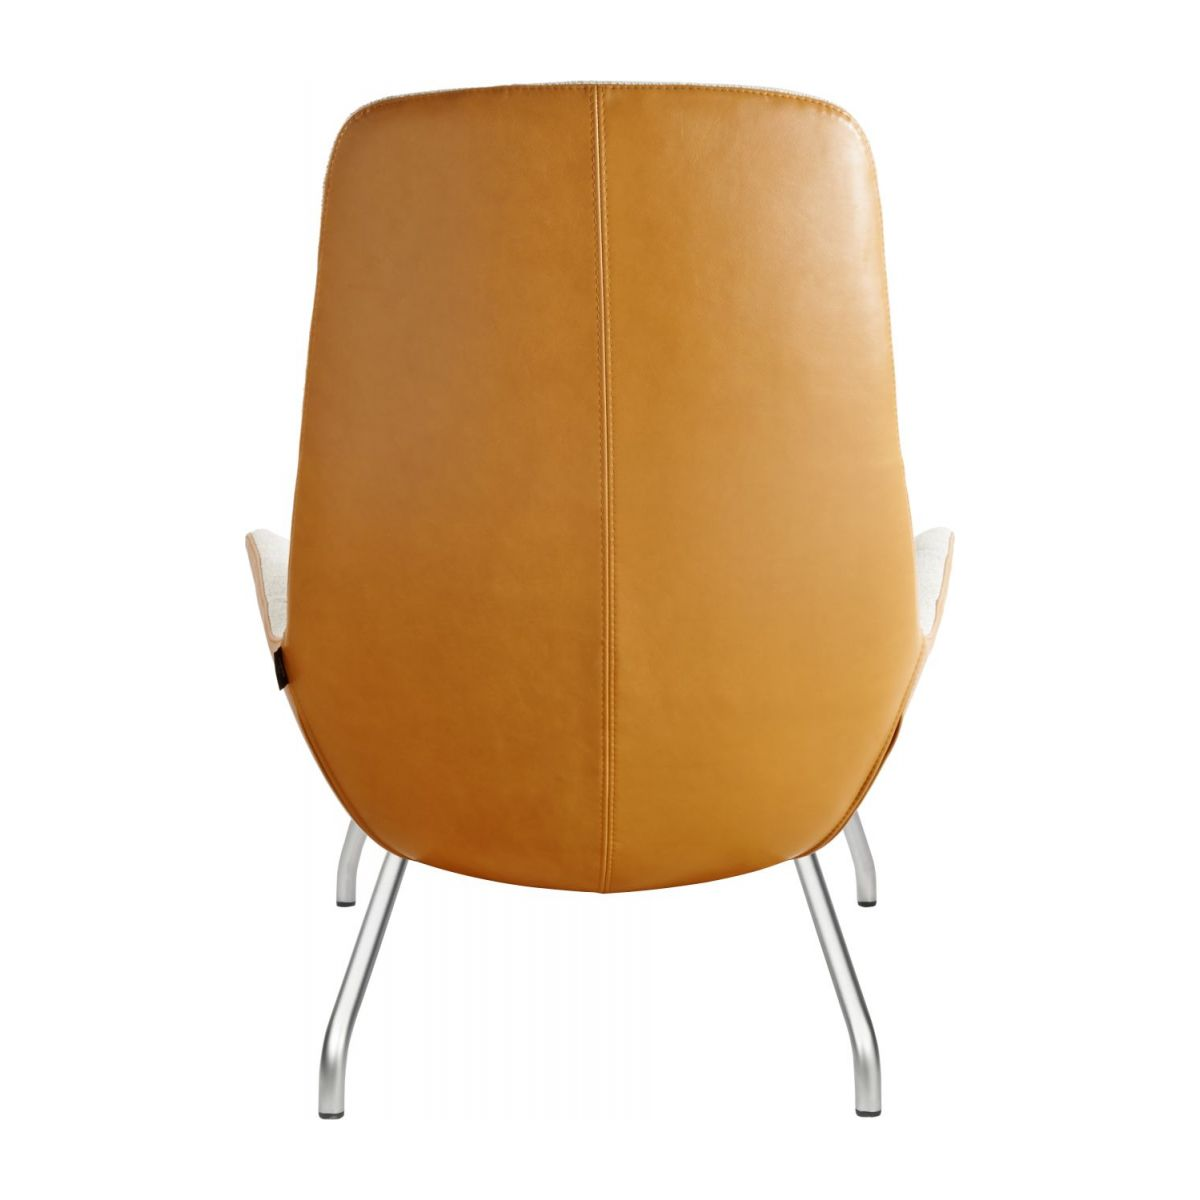 Armchair in Lecce fabric, nature and cognac vintage leather with matt metal legs n°3